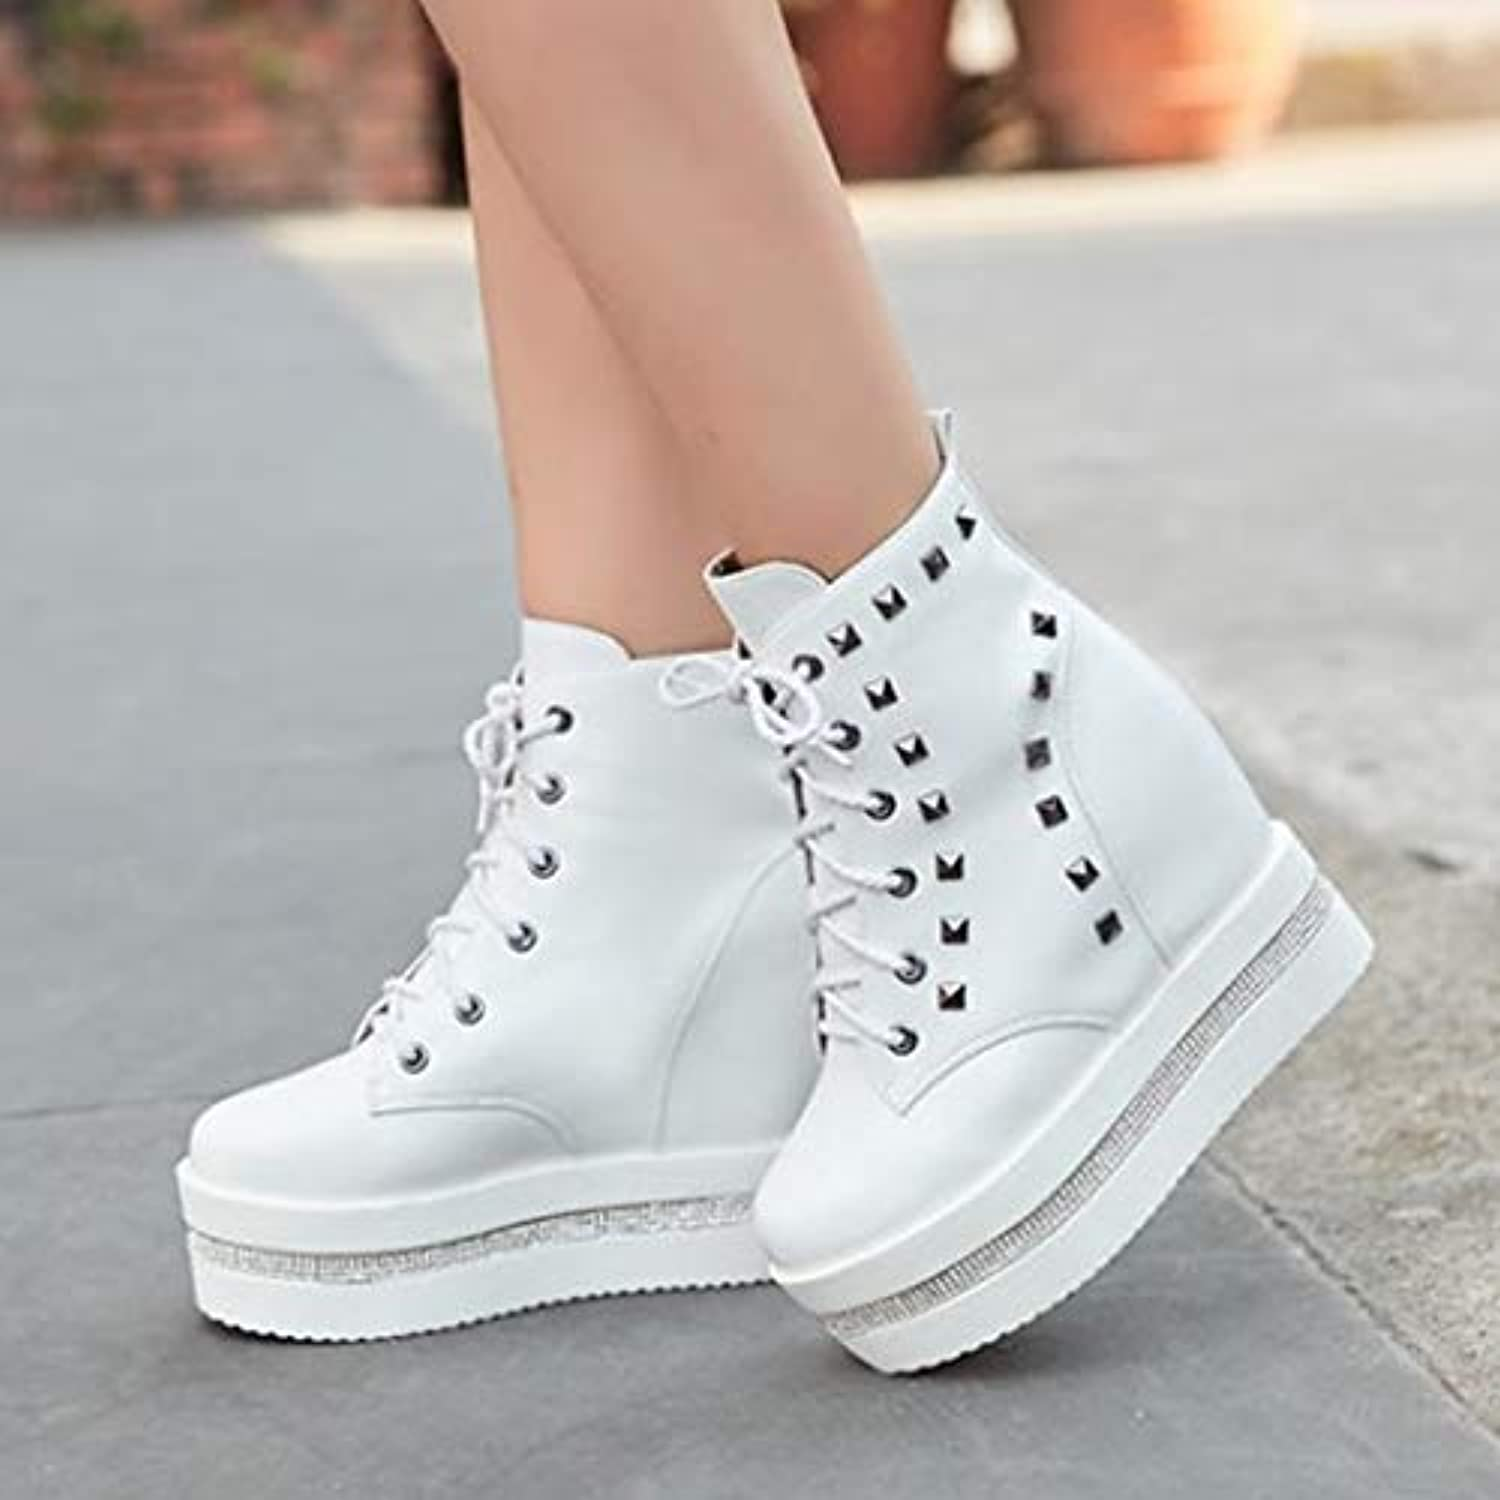 9fcc78dc76dd ZHZNVX Women s Shoes PU(Polyurethane) Fall   Winter Winter Winter Fashion  Boots Bootie Sneakers Wedge Heel Round Toe Booties... B07H1GCS88 Parent  83ab15